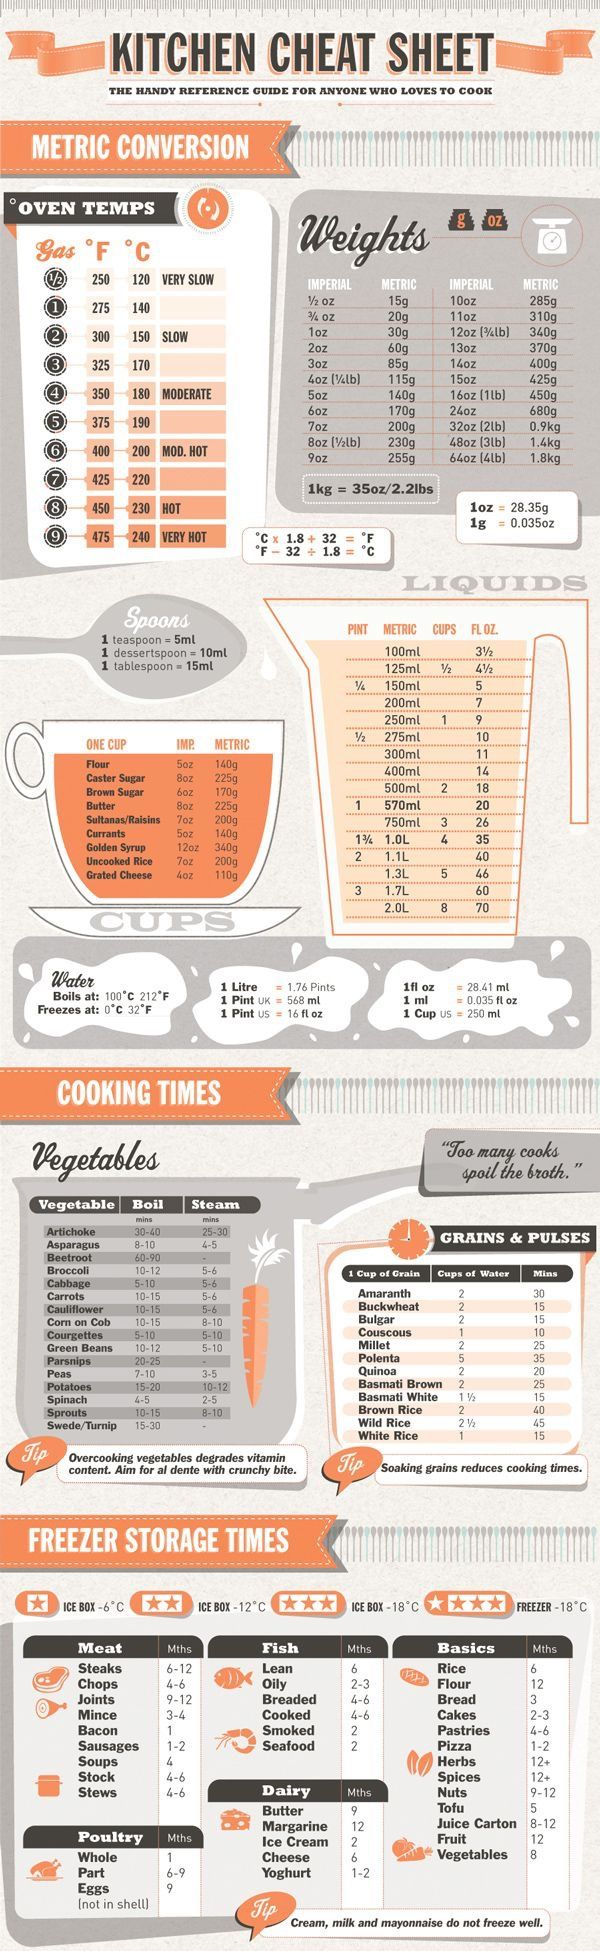 Kitchen Cooking Cheat Sheet - From Everest Home Improvements | Glamour Shots | Cooking measurements, Kitchen cheat sheets